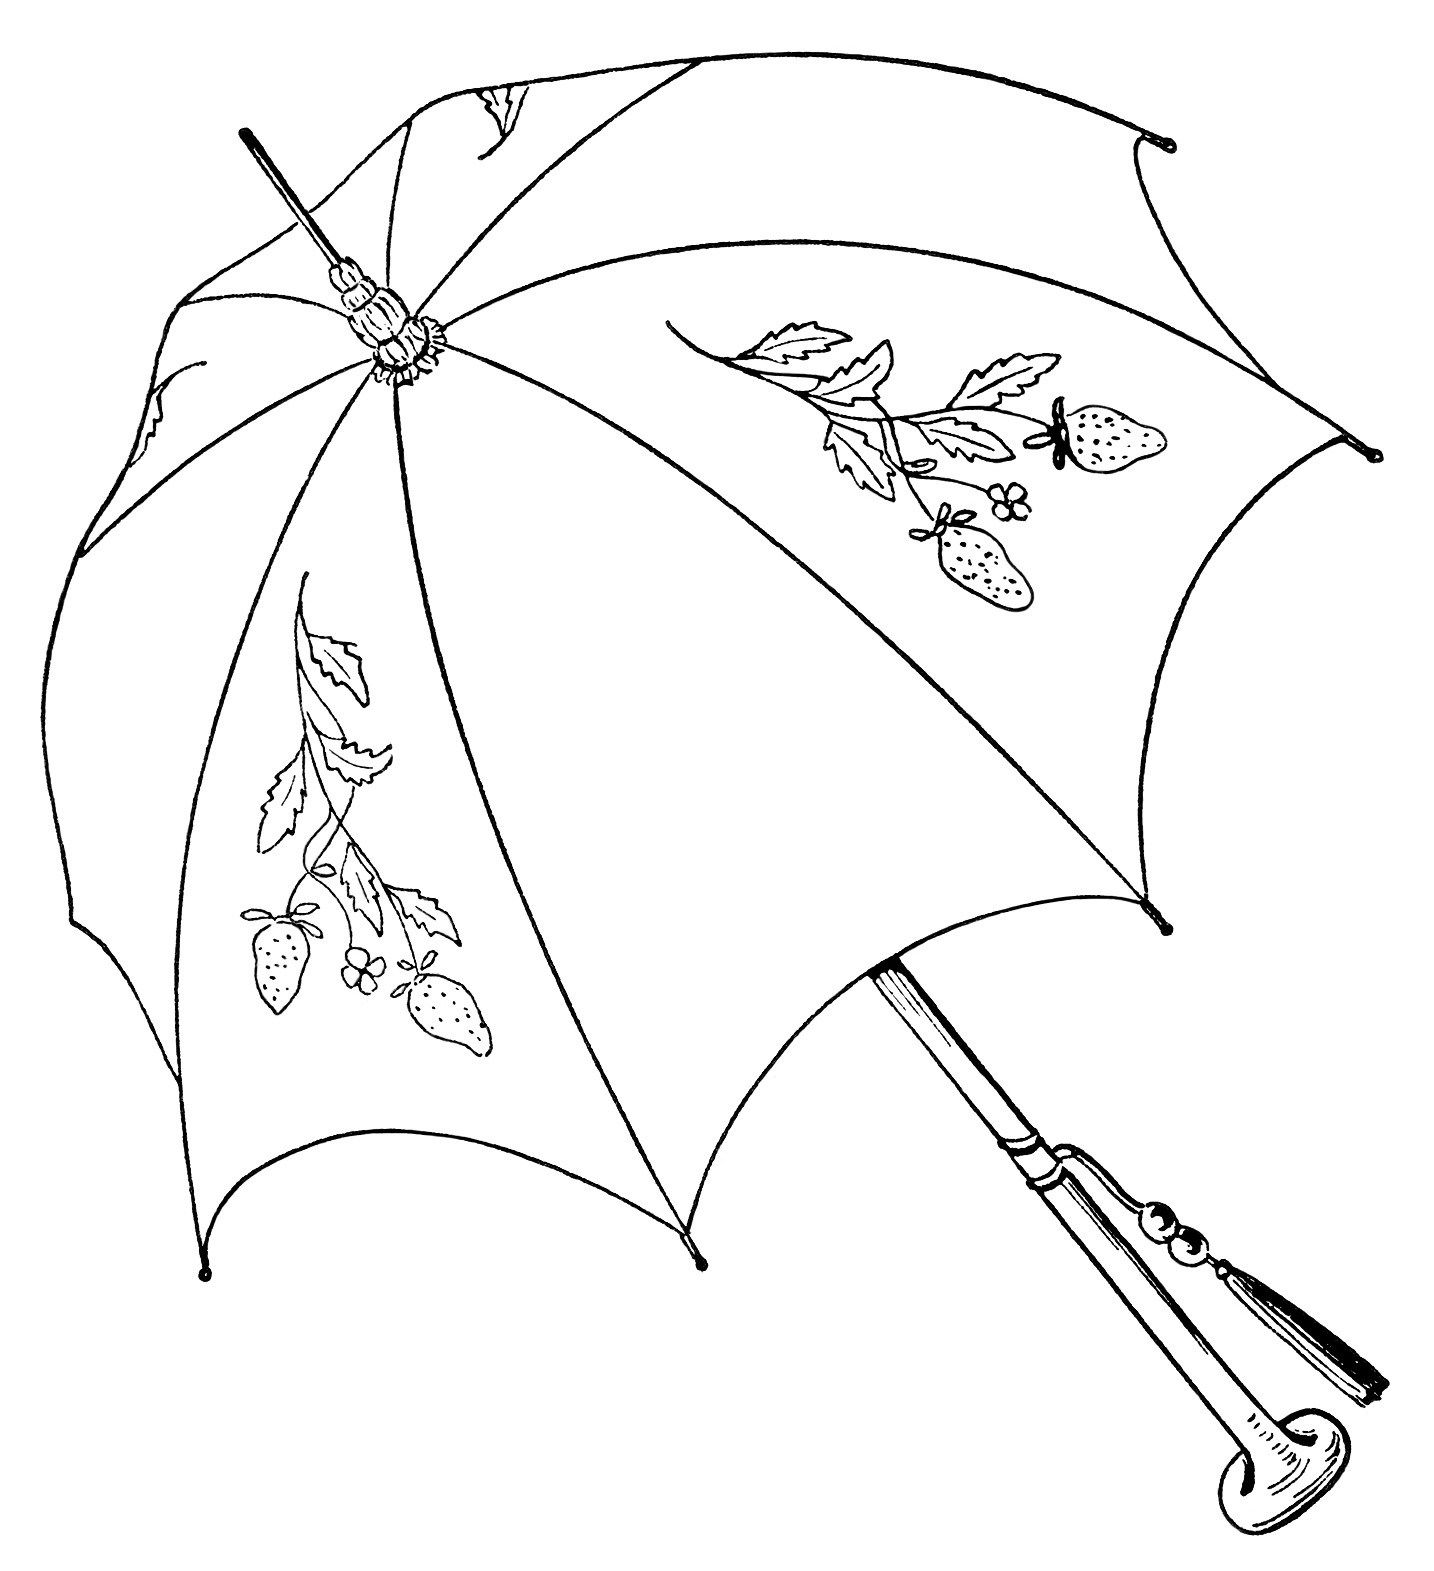 vintage parasol clipart, black and white graphics, umbrella clip ... for Strawberry Clipart Black And White  66pct